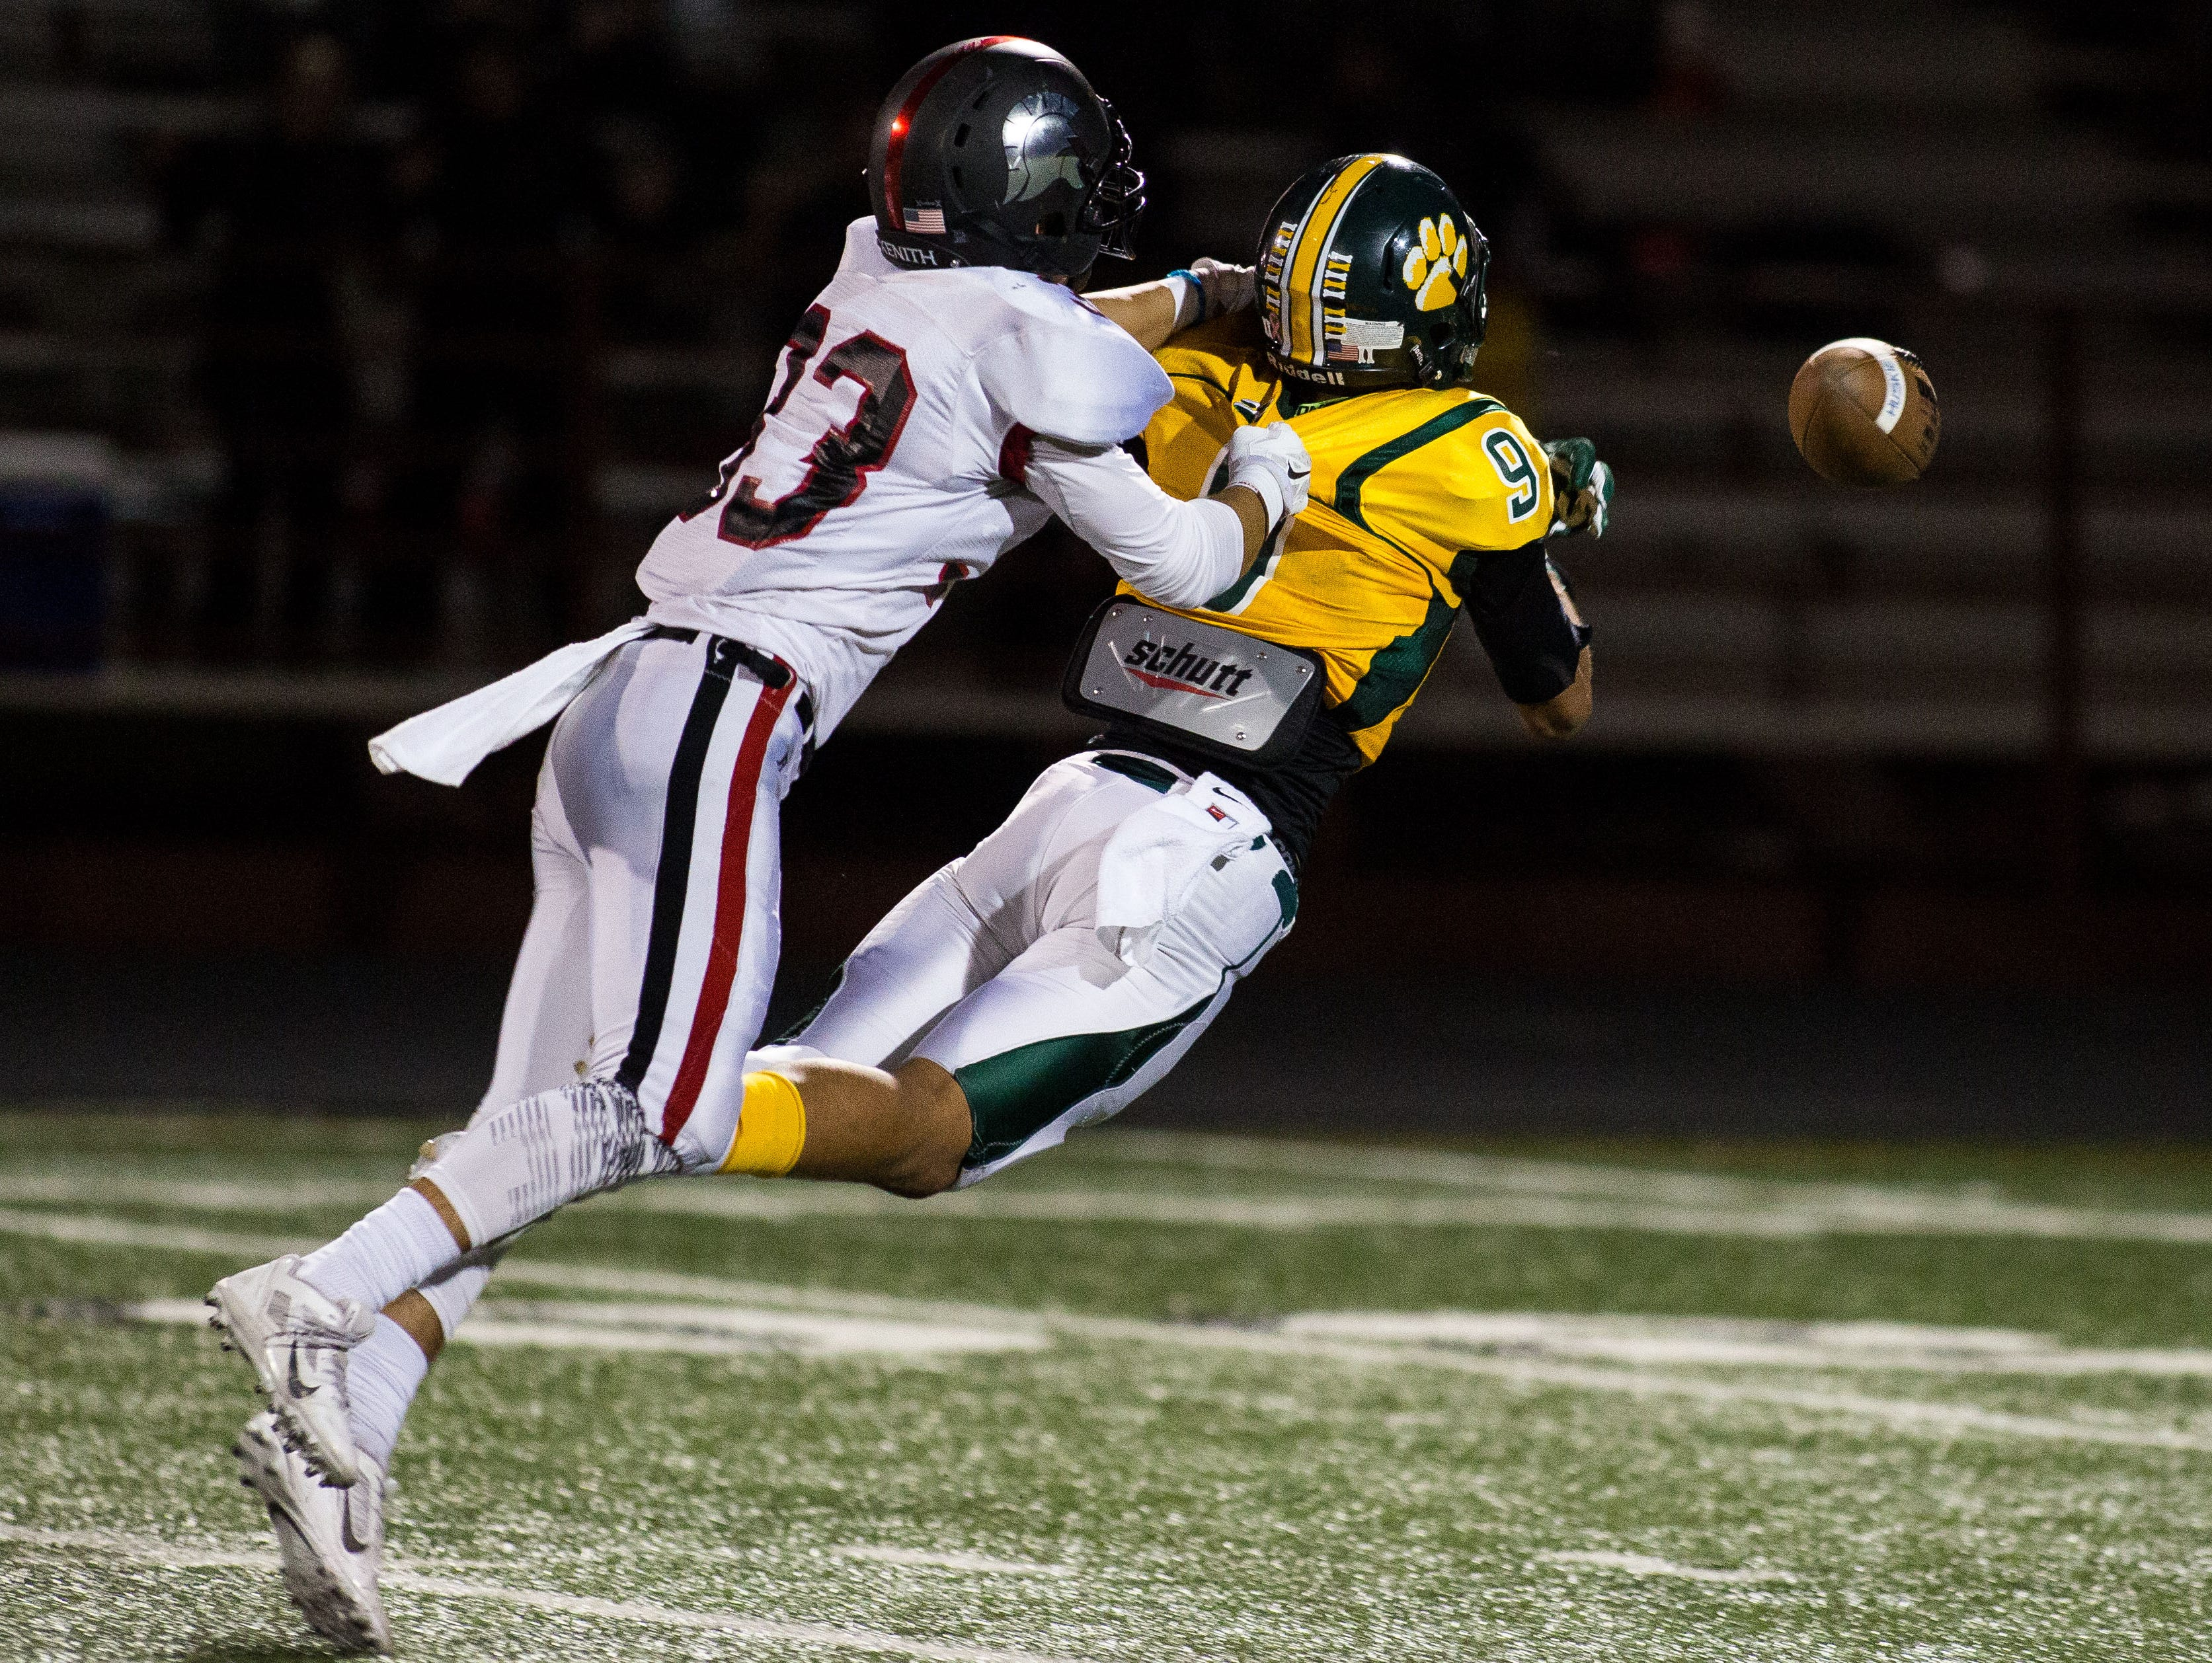 No. 6 Julian Carter, Saguaro, 6-3, 190, Sr. | He showed signs last season at Horizon that he was a special playmaker with his ability to extend plays after catches. Some believe he might be a bigger version of Byron Murphy. He'll have a chance to show what he can do with talented quarterback Kare' Lyles back.